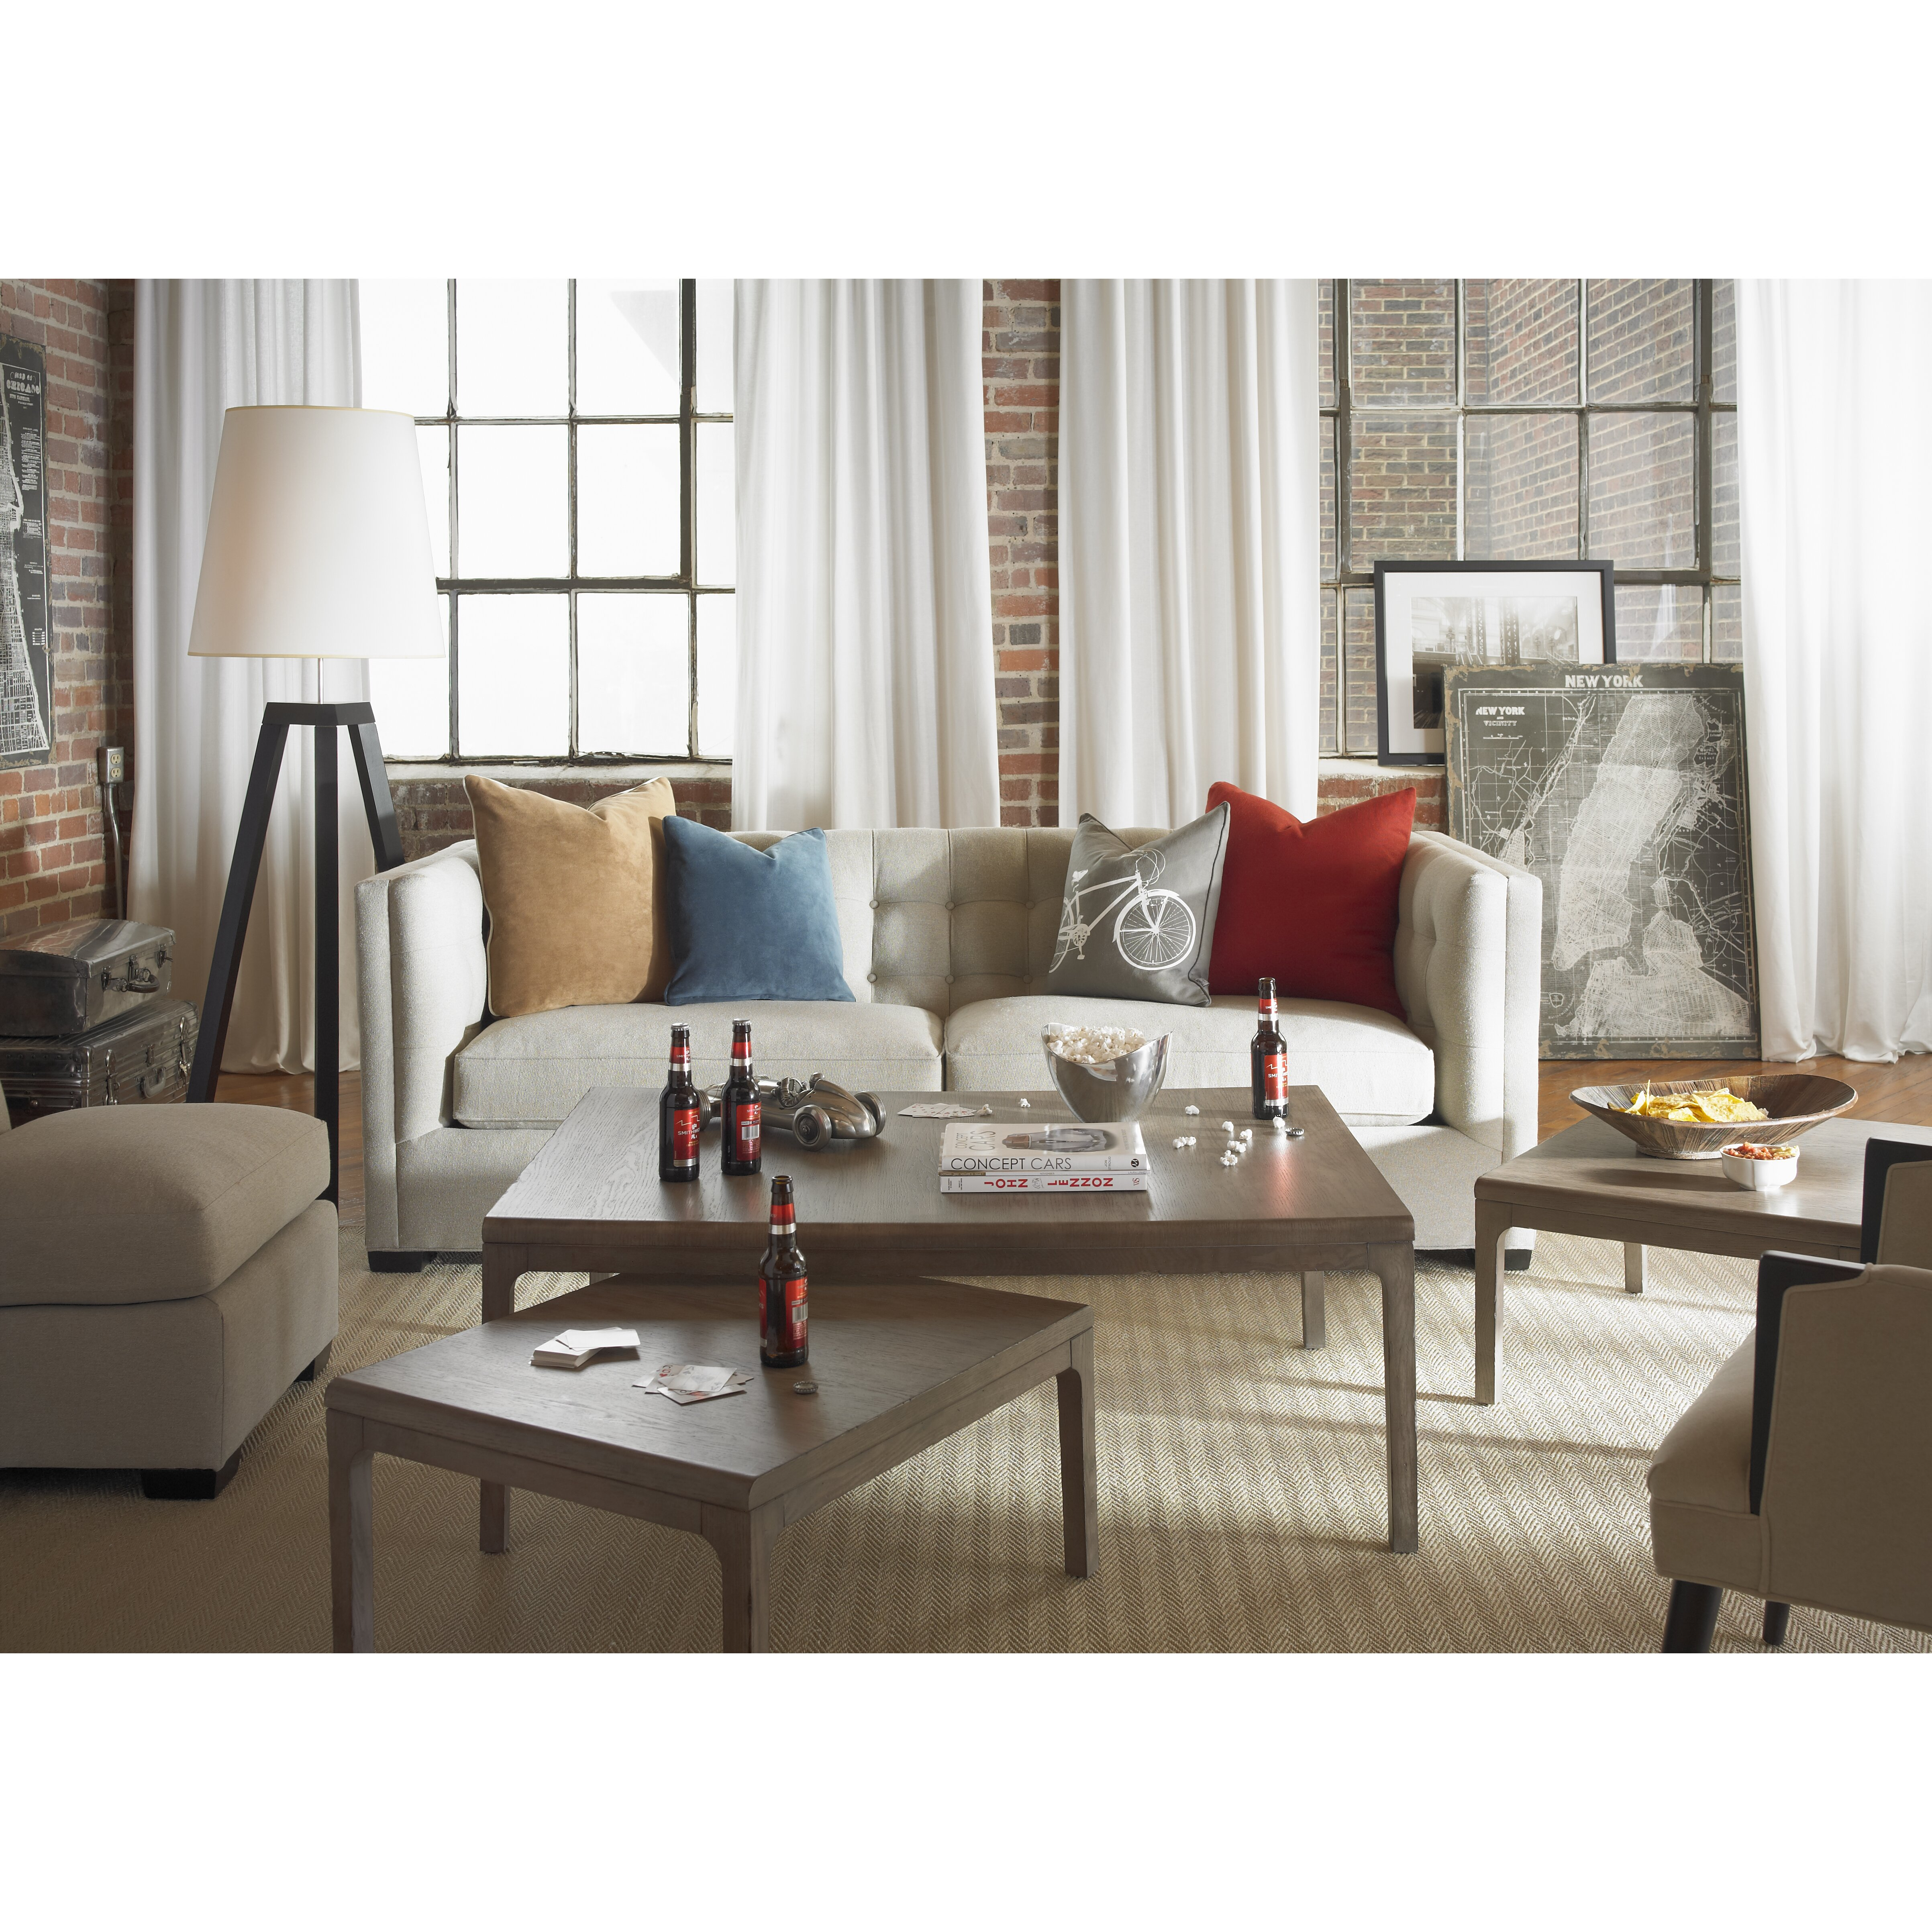 Somerton Dwelling Improv 3 Piece Nesting Coffee Table Set